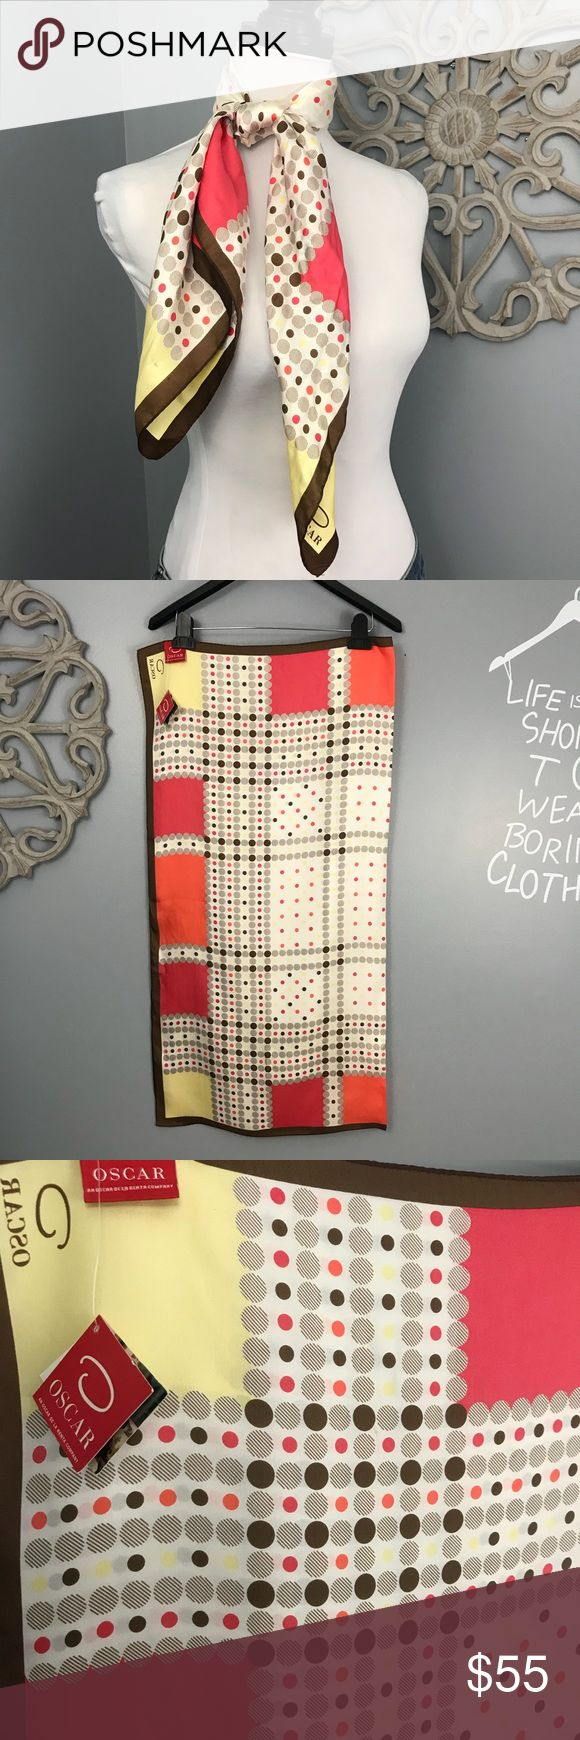 """Oscar De La Renta   Silk Scarf NWT 34"""" x 34"""" silk square scarf with coral, taupe, yellow, pink, and brown dots.   Lovely.  NWT. Oscar de la Renta Accessories Scarves & Wraps"""